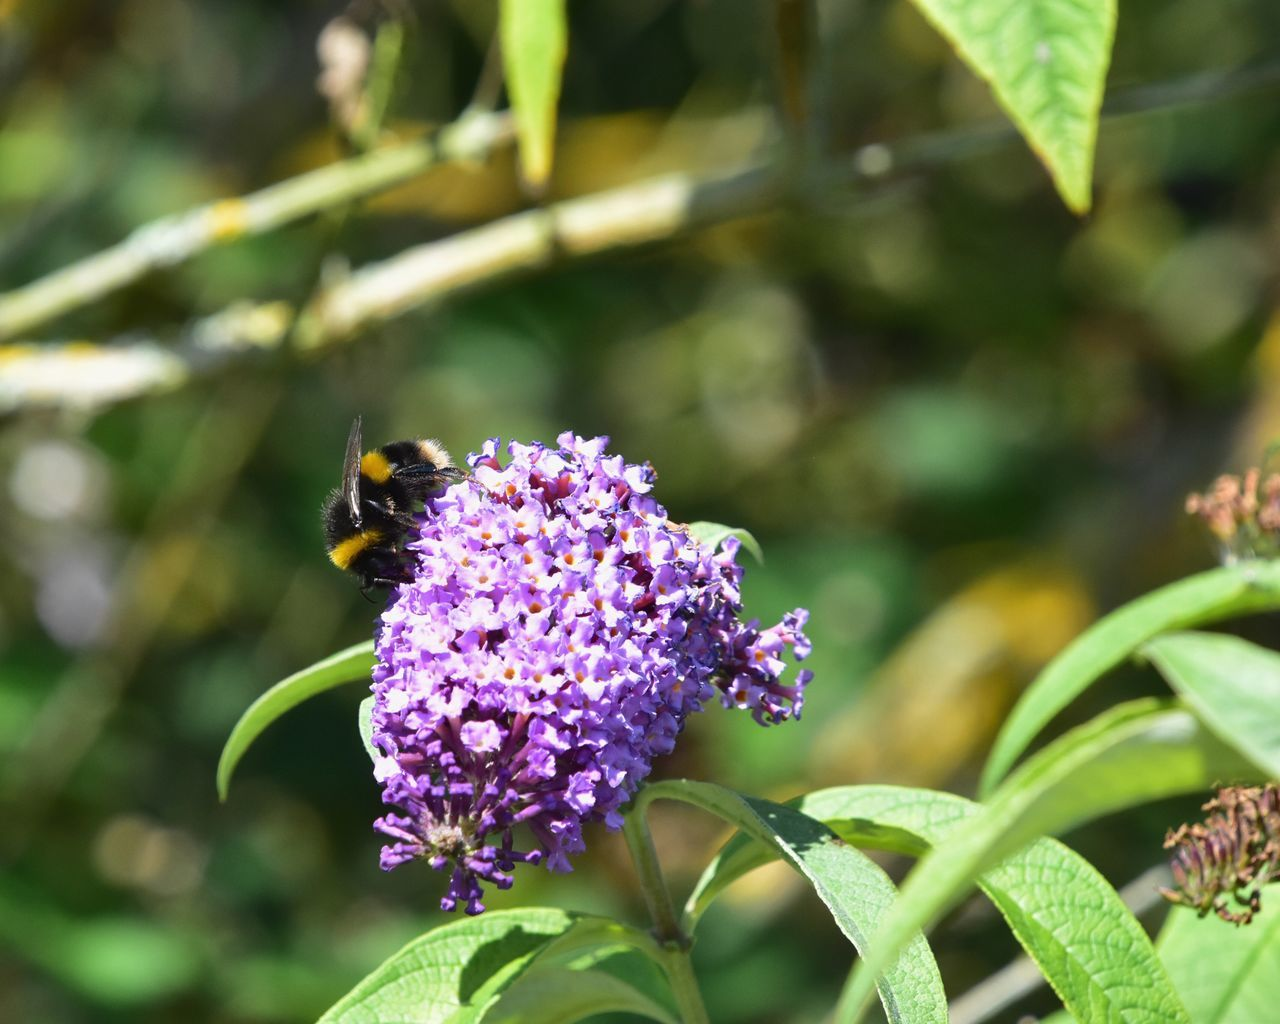 insect, flower, one animal, animals in the wild, animal themes, purple, nature, freshness, growth, beauty in nature, plant, fragility, focus on foreground, pollination, bee, animal wildlife, petal, day, green color, outdoors, no people, leaf, bumblebee, close-up, flower head